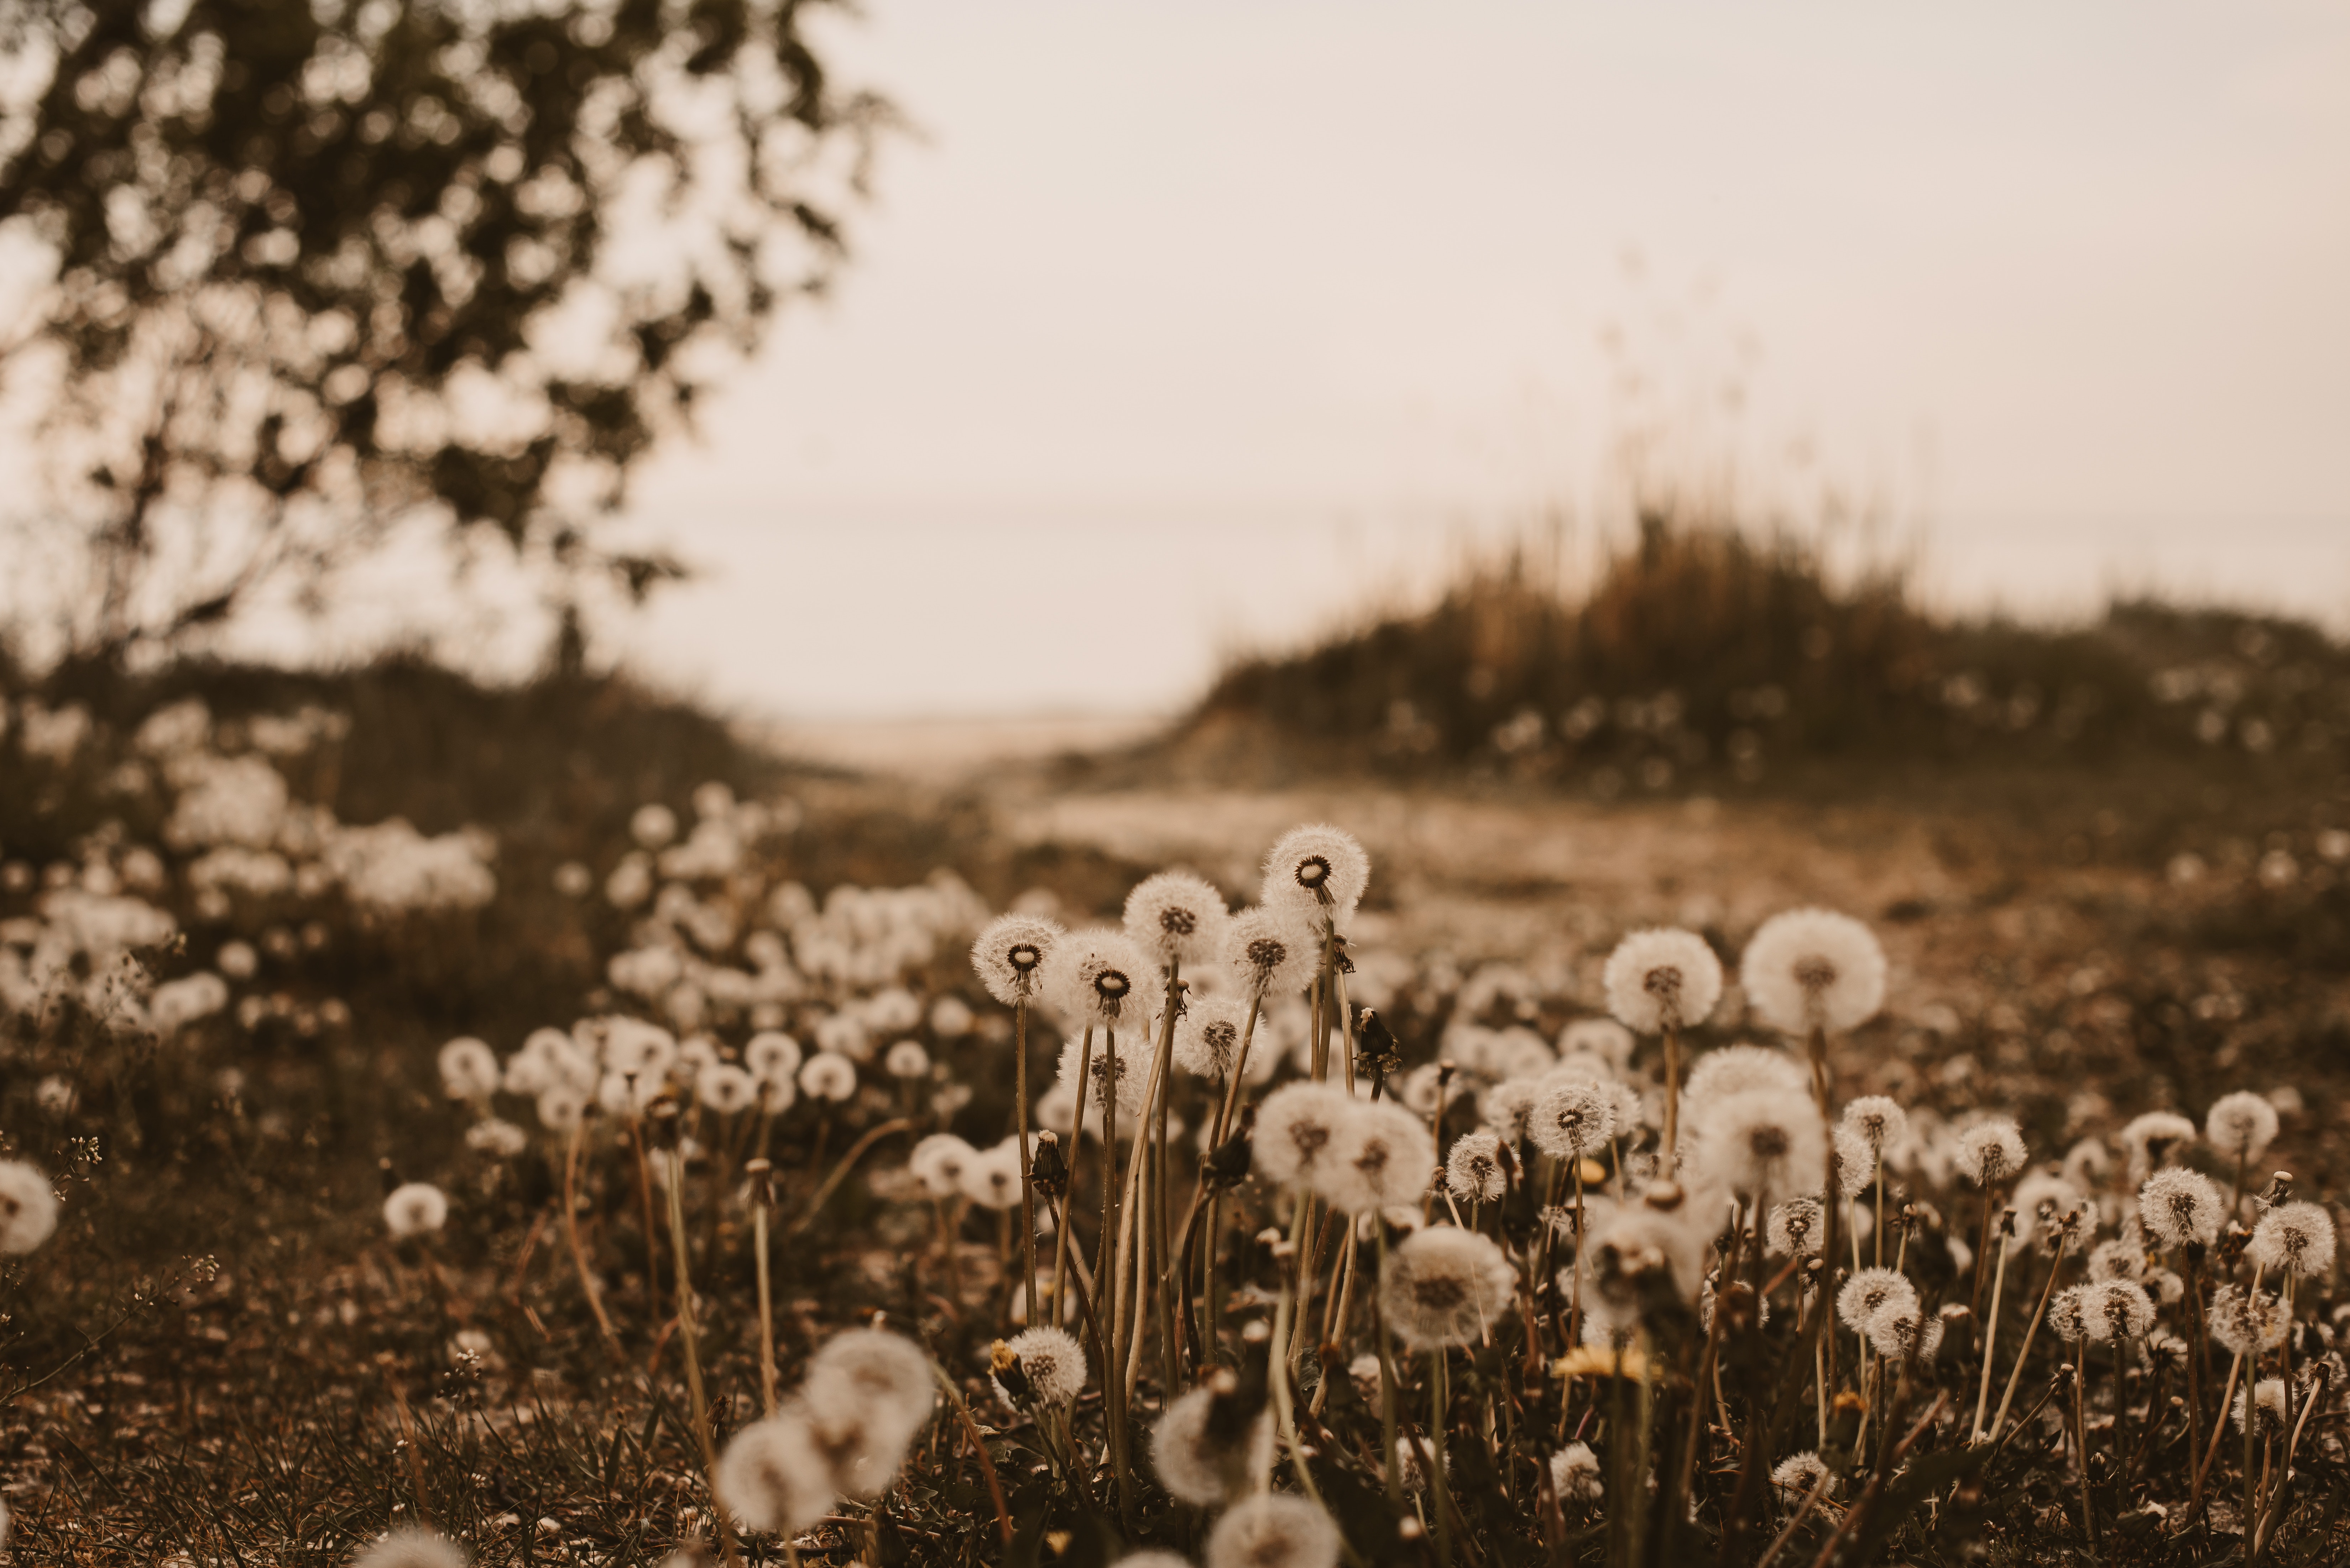 151473 download wallpaper Plants, Nature, Dandelions, Fluffy screensavers and pictures for free